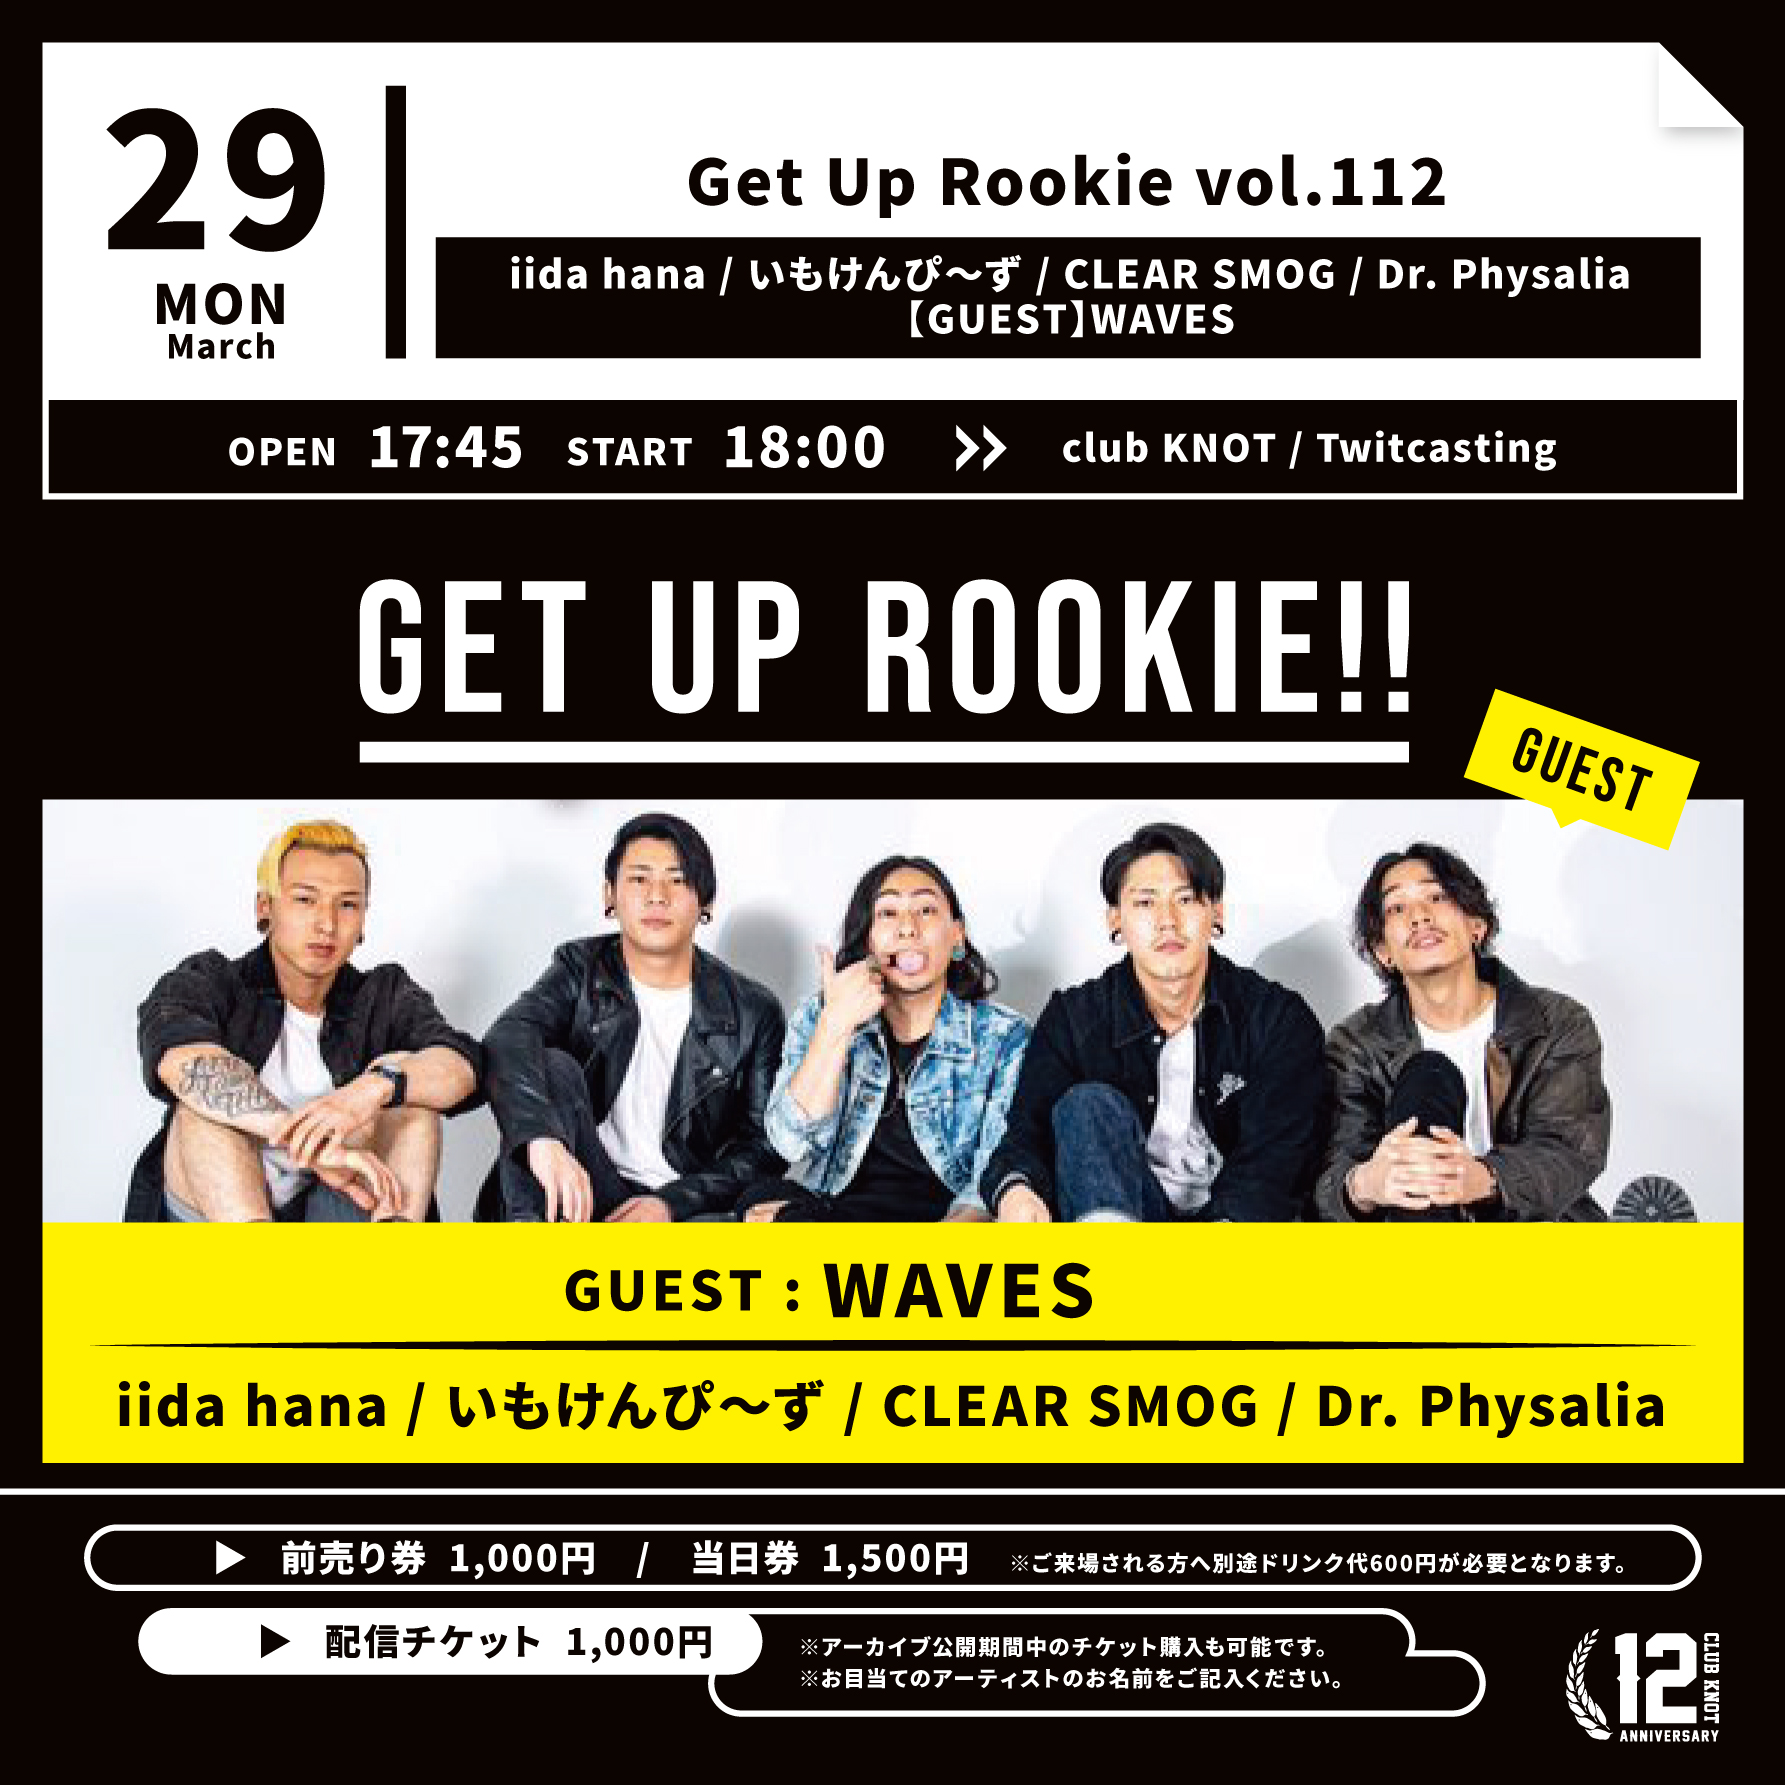 Get Up Rookie vol.112